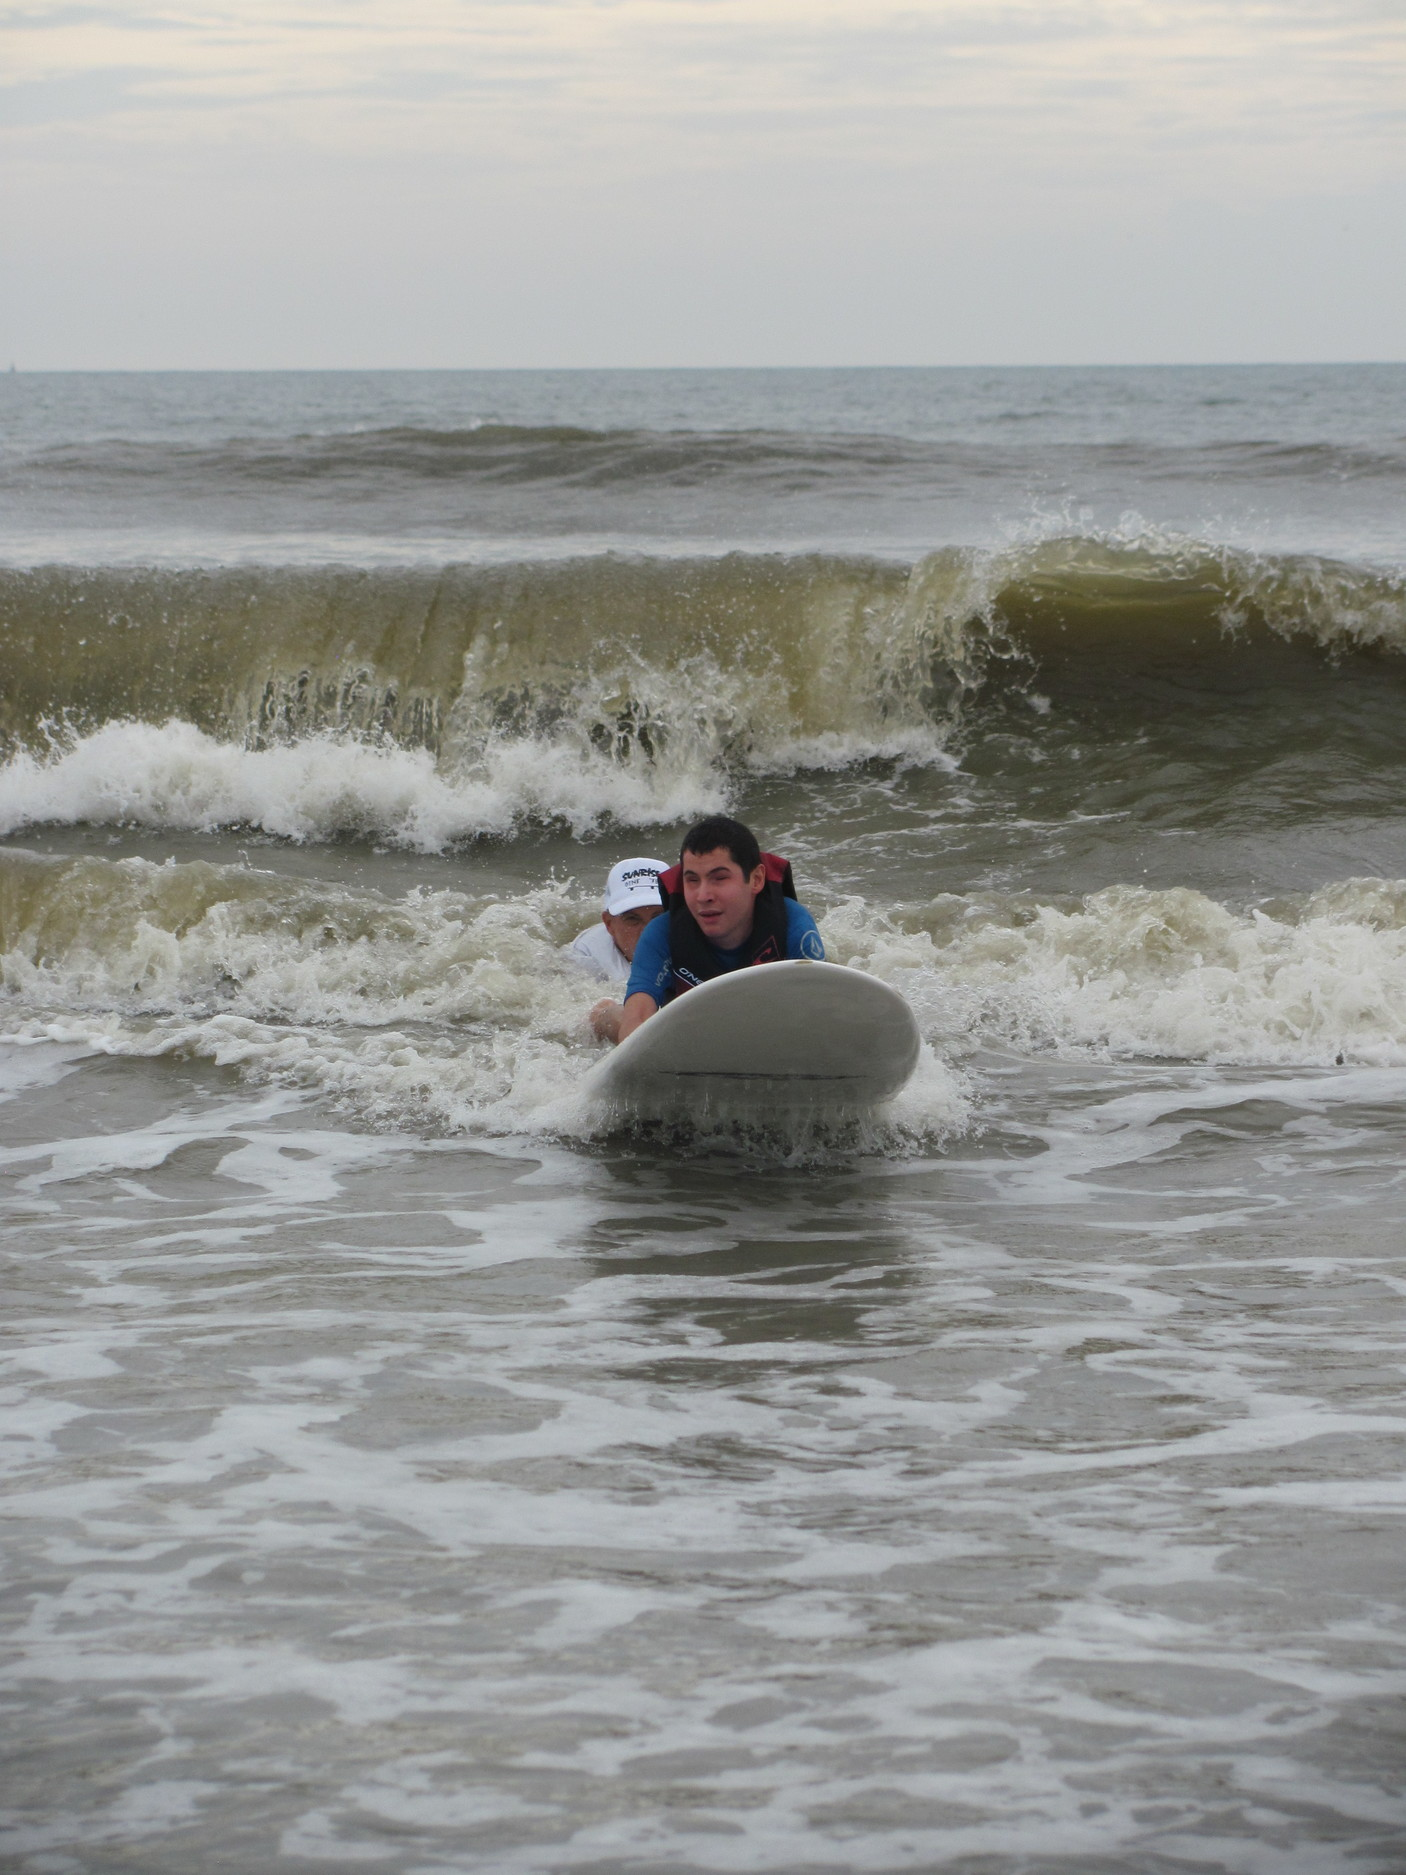 Max, a camp participant for the past 10 years, jets towards the shore after catching a long wave.